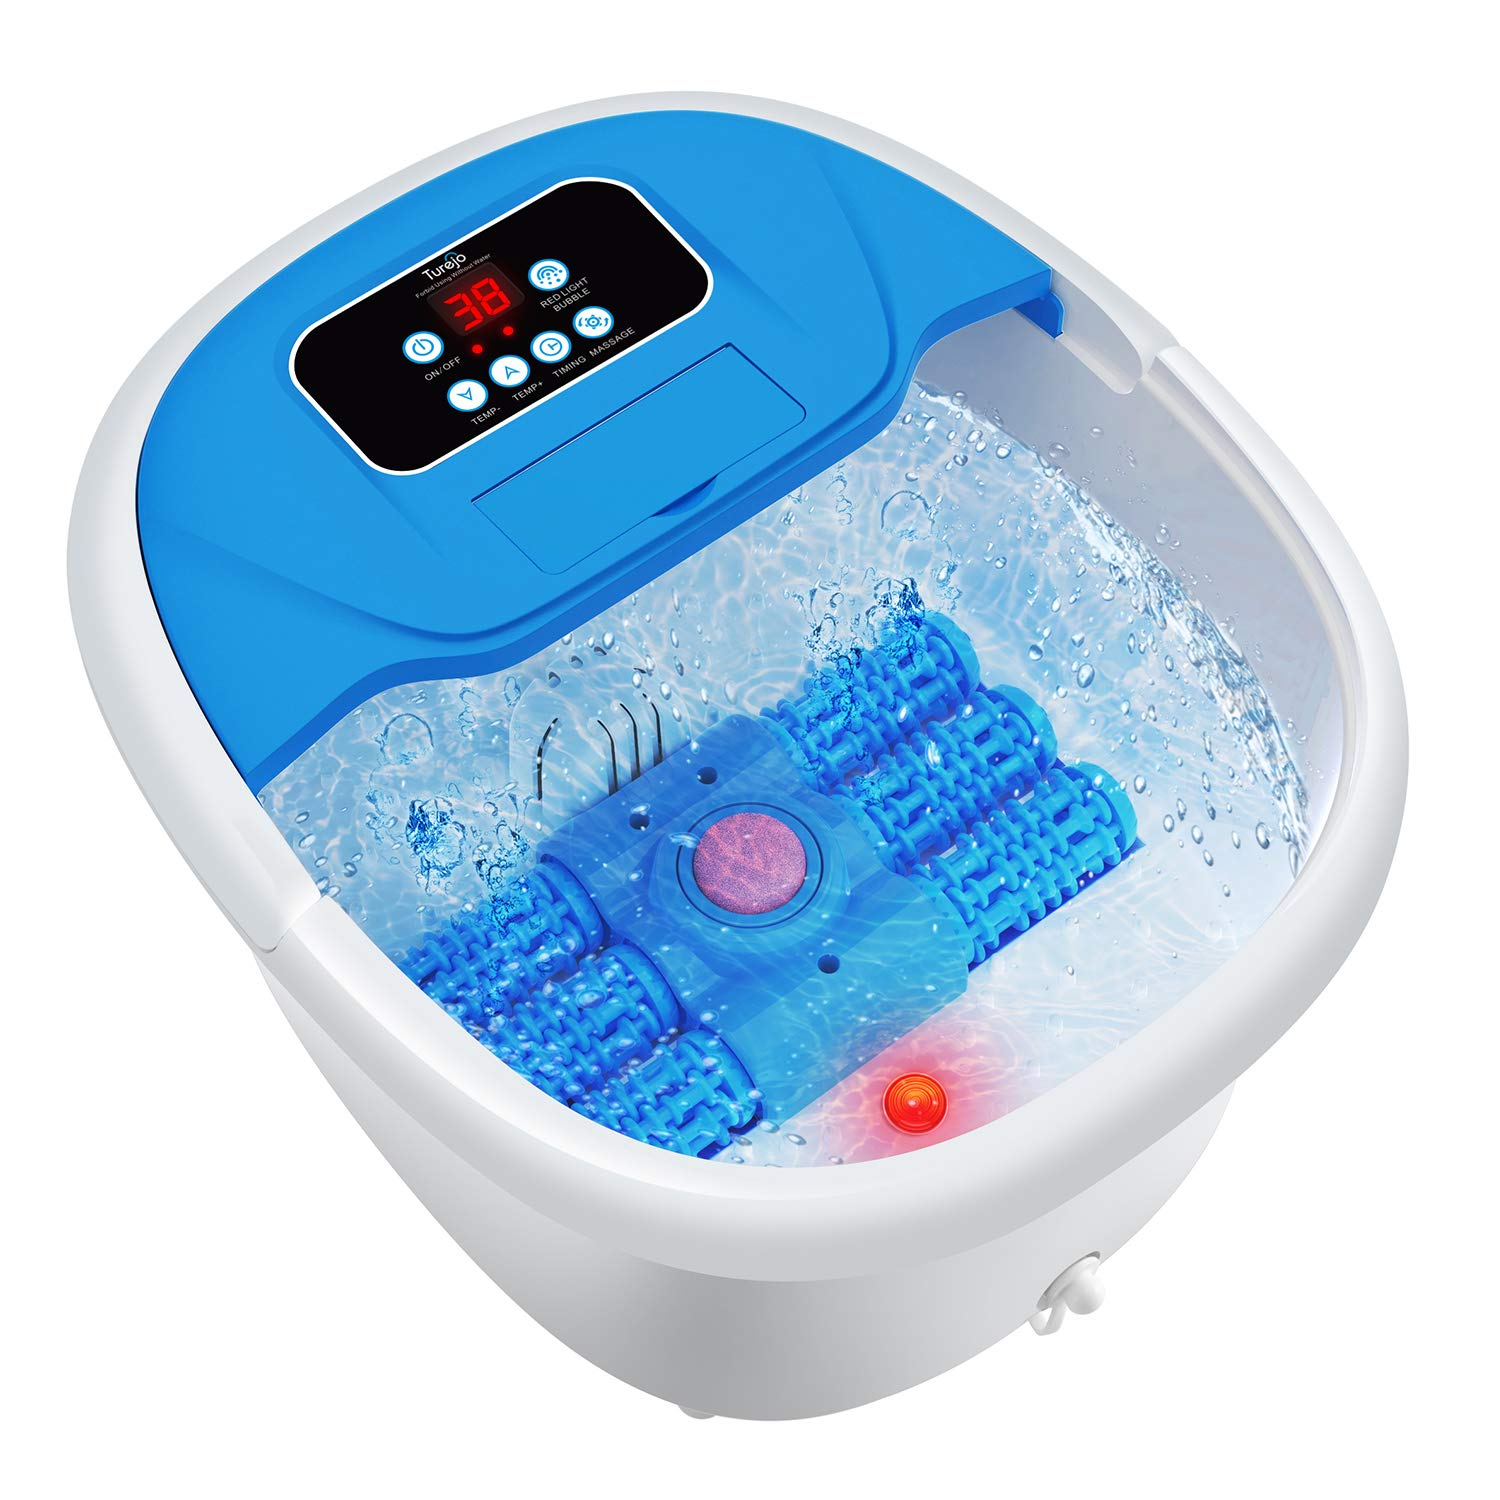 Turejo Foot Spa Massager with Heat Bath, Ultimate Electric Massage Rollers, Adjustable Temperature and Time, Bubbles Jets, Pumice Stone, Infrared Light and Medicine Box – include Pedicure Attachments